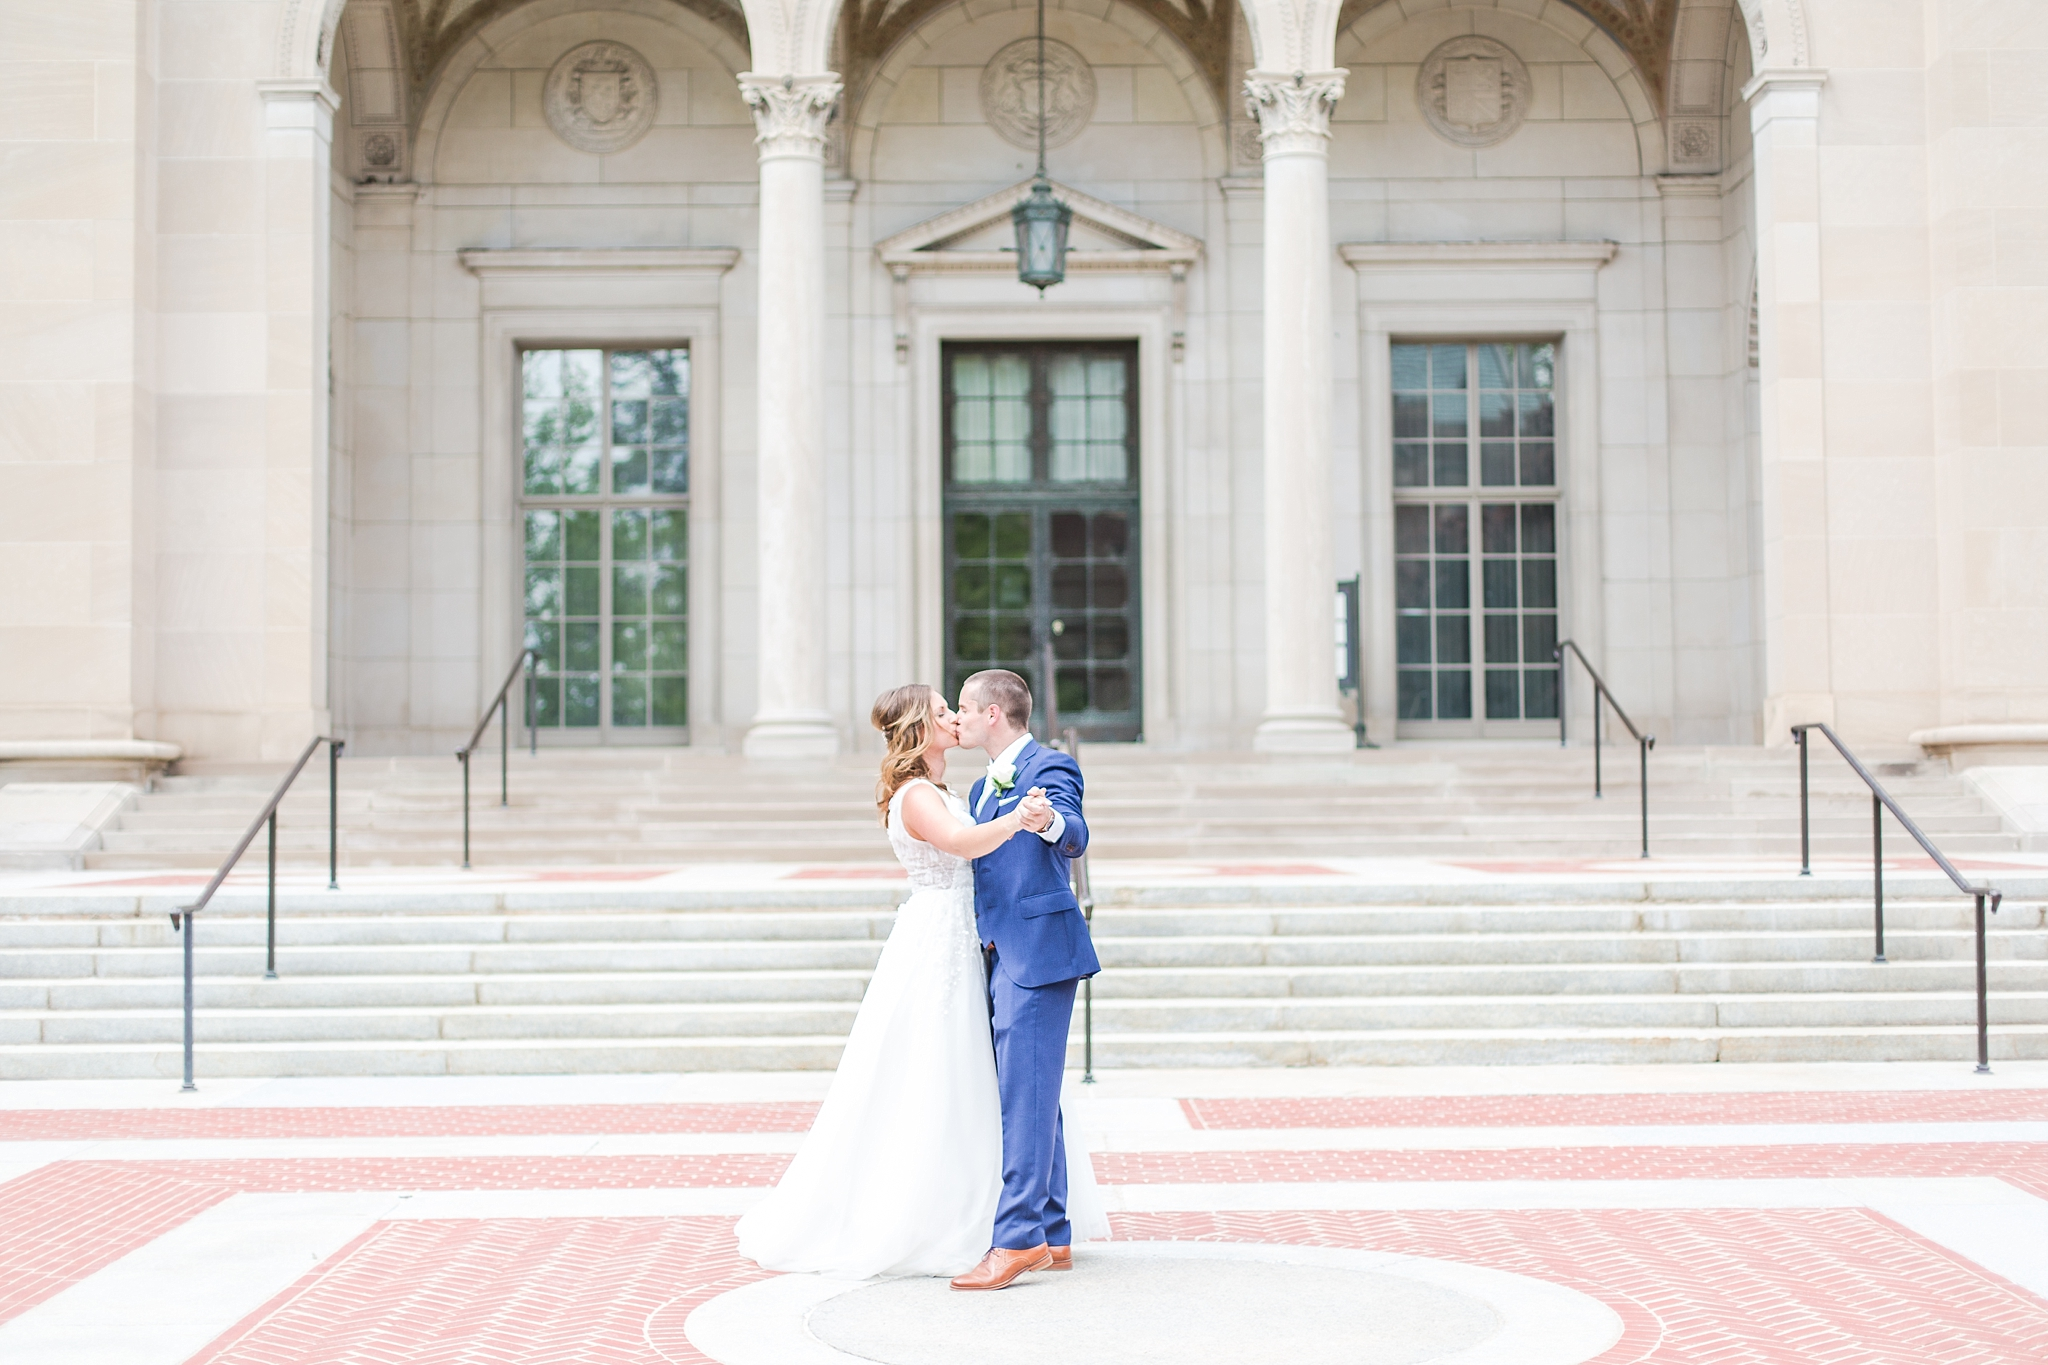 joyful-candid-laid-back-wedding-photos-in-ann-arbor-michigan-and-at-the-eagle-crest-golf-resort-by-courtney-carolyn-photography_0057.jpg